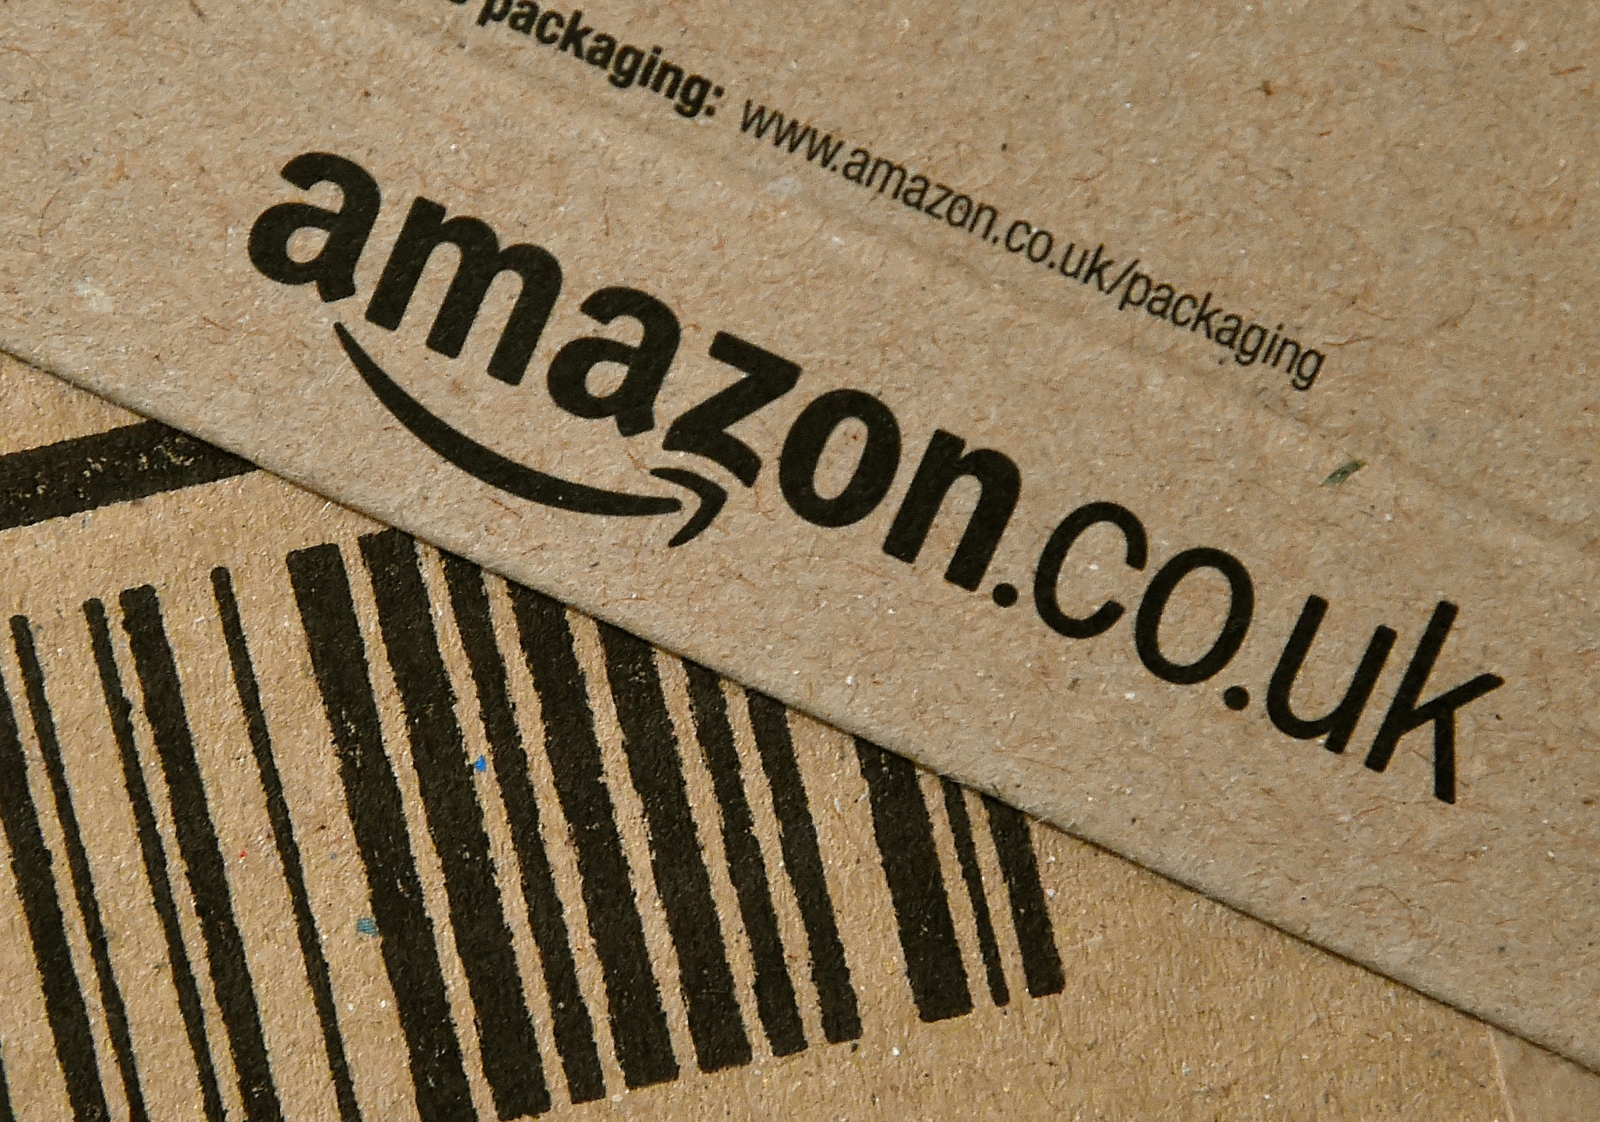 Amazon to create 5000 UK jobs